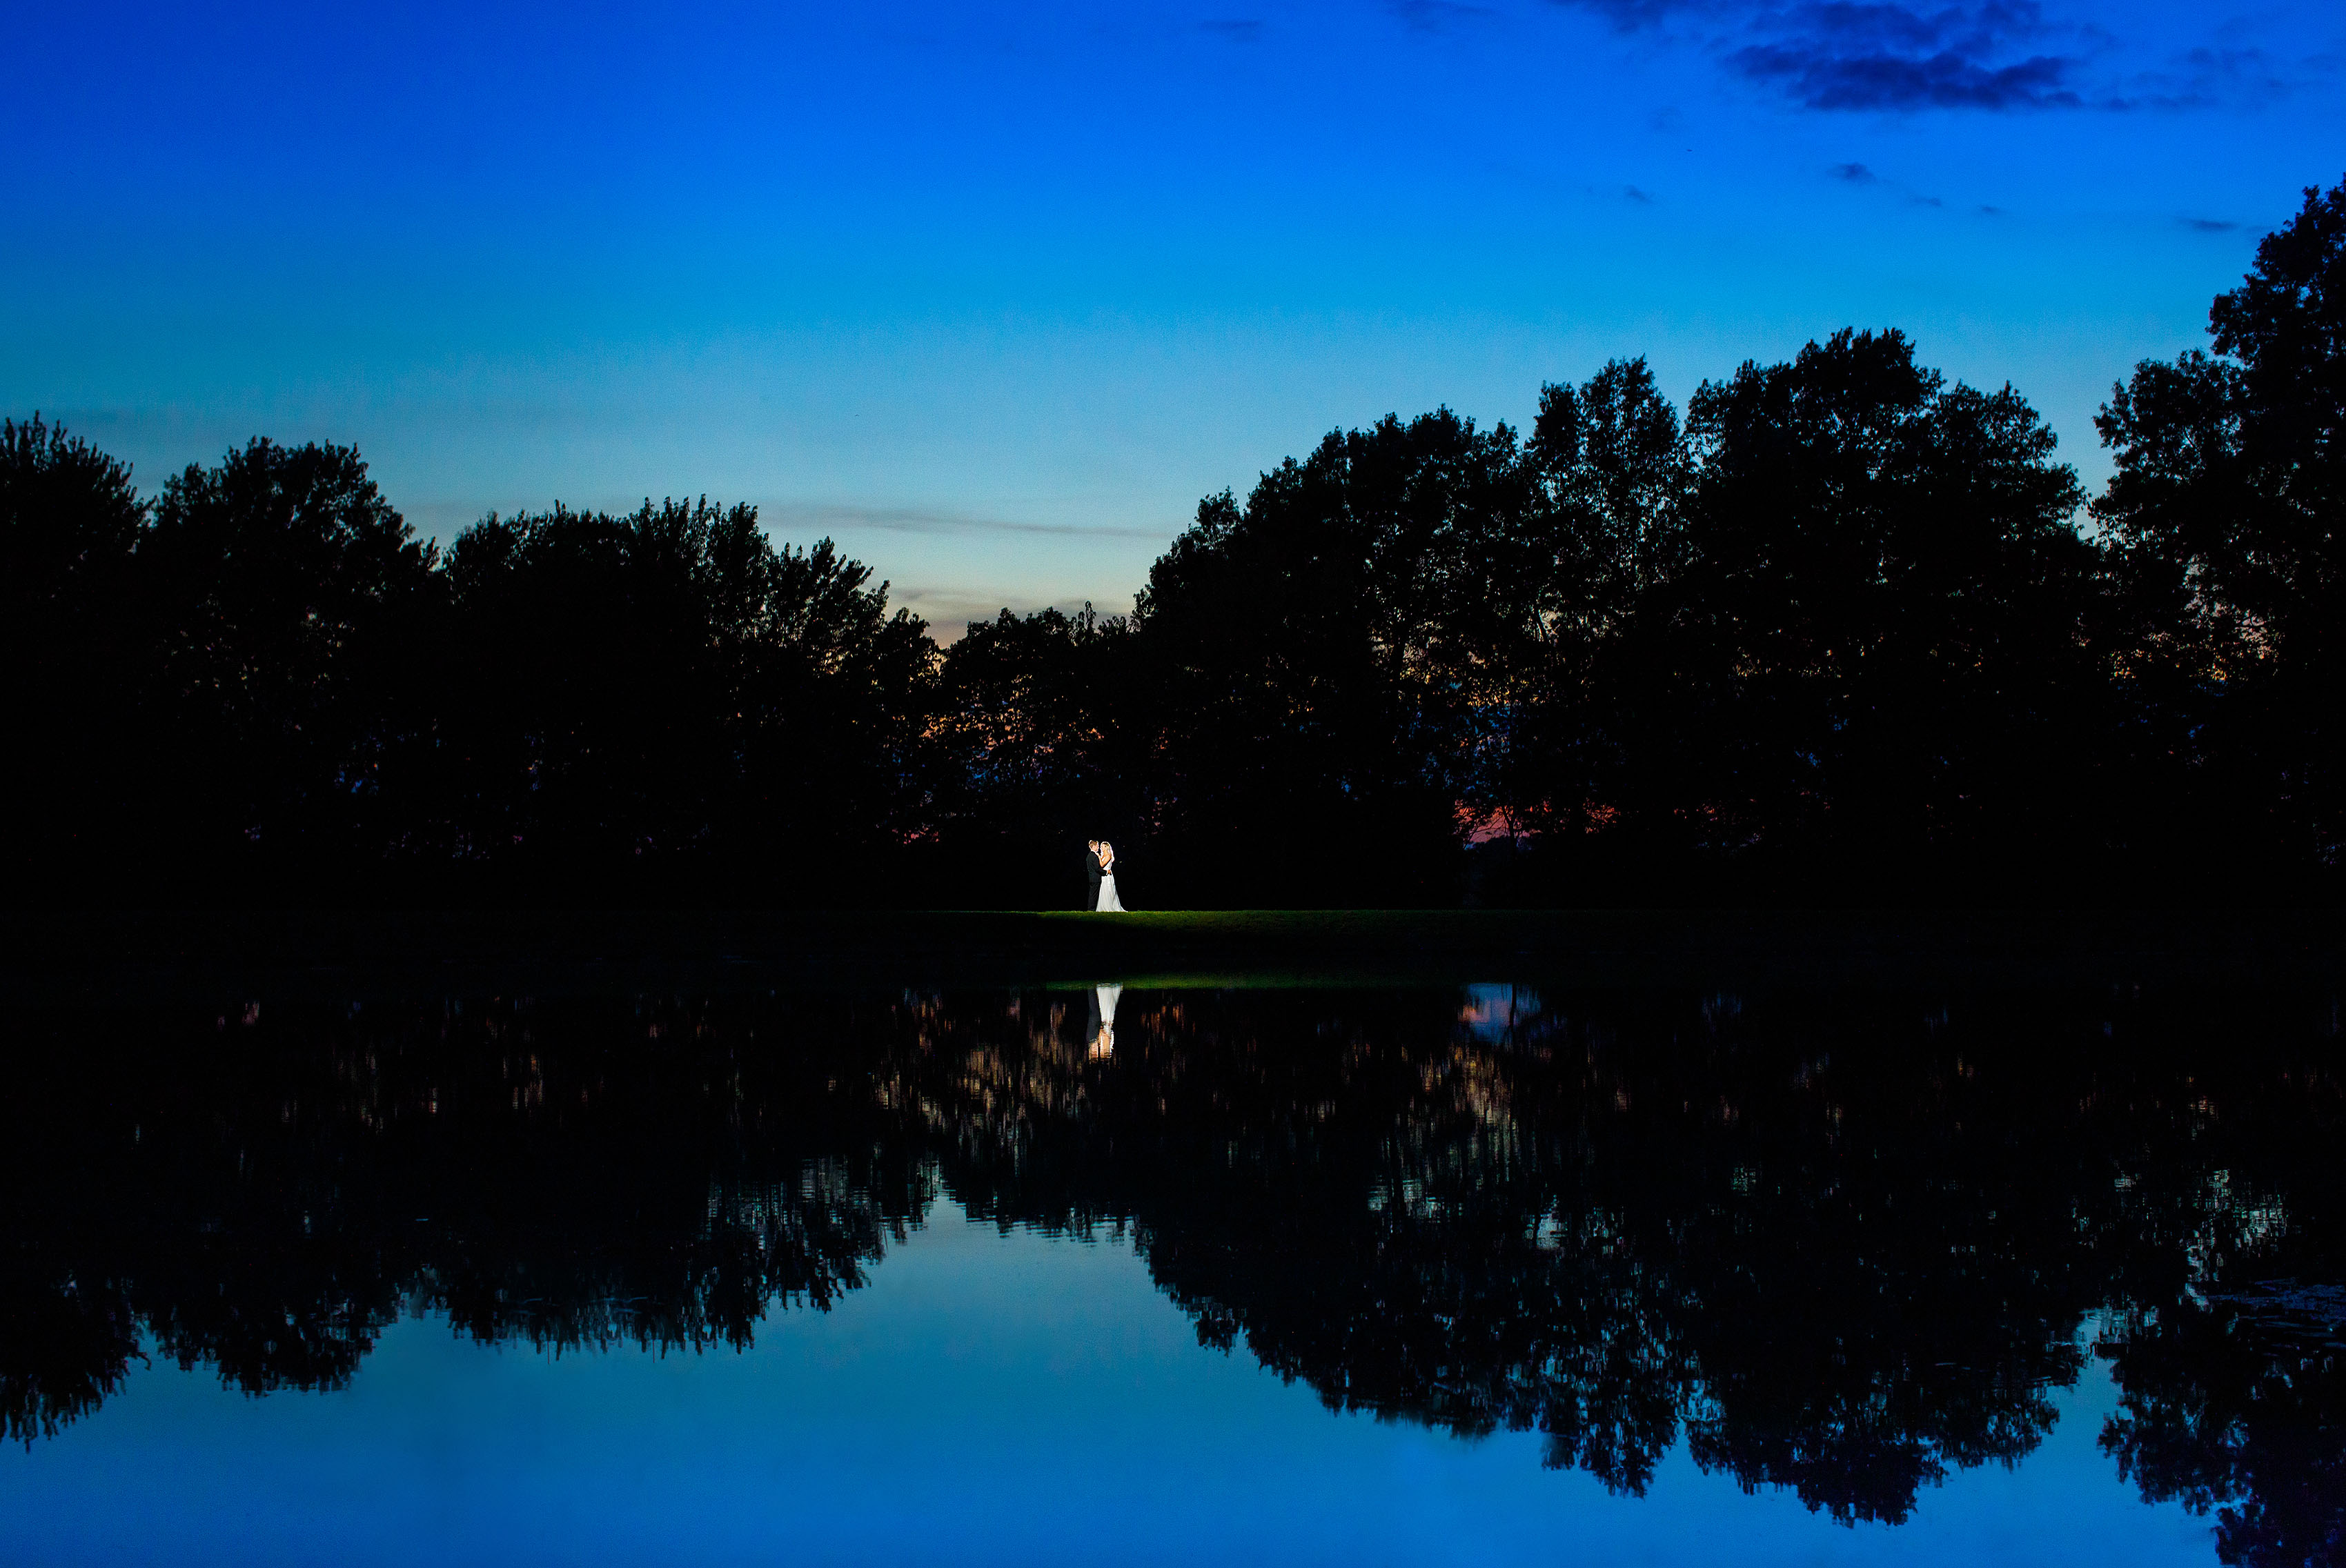 Jacob and Sienna are reflected in the pond while posing for a portrait during their summer Emerson Fields wedding at sunset